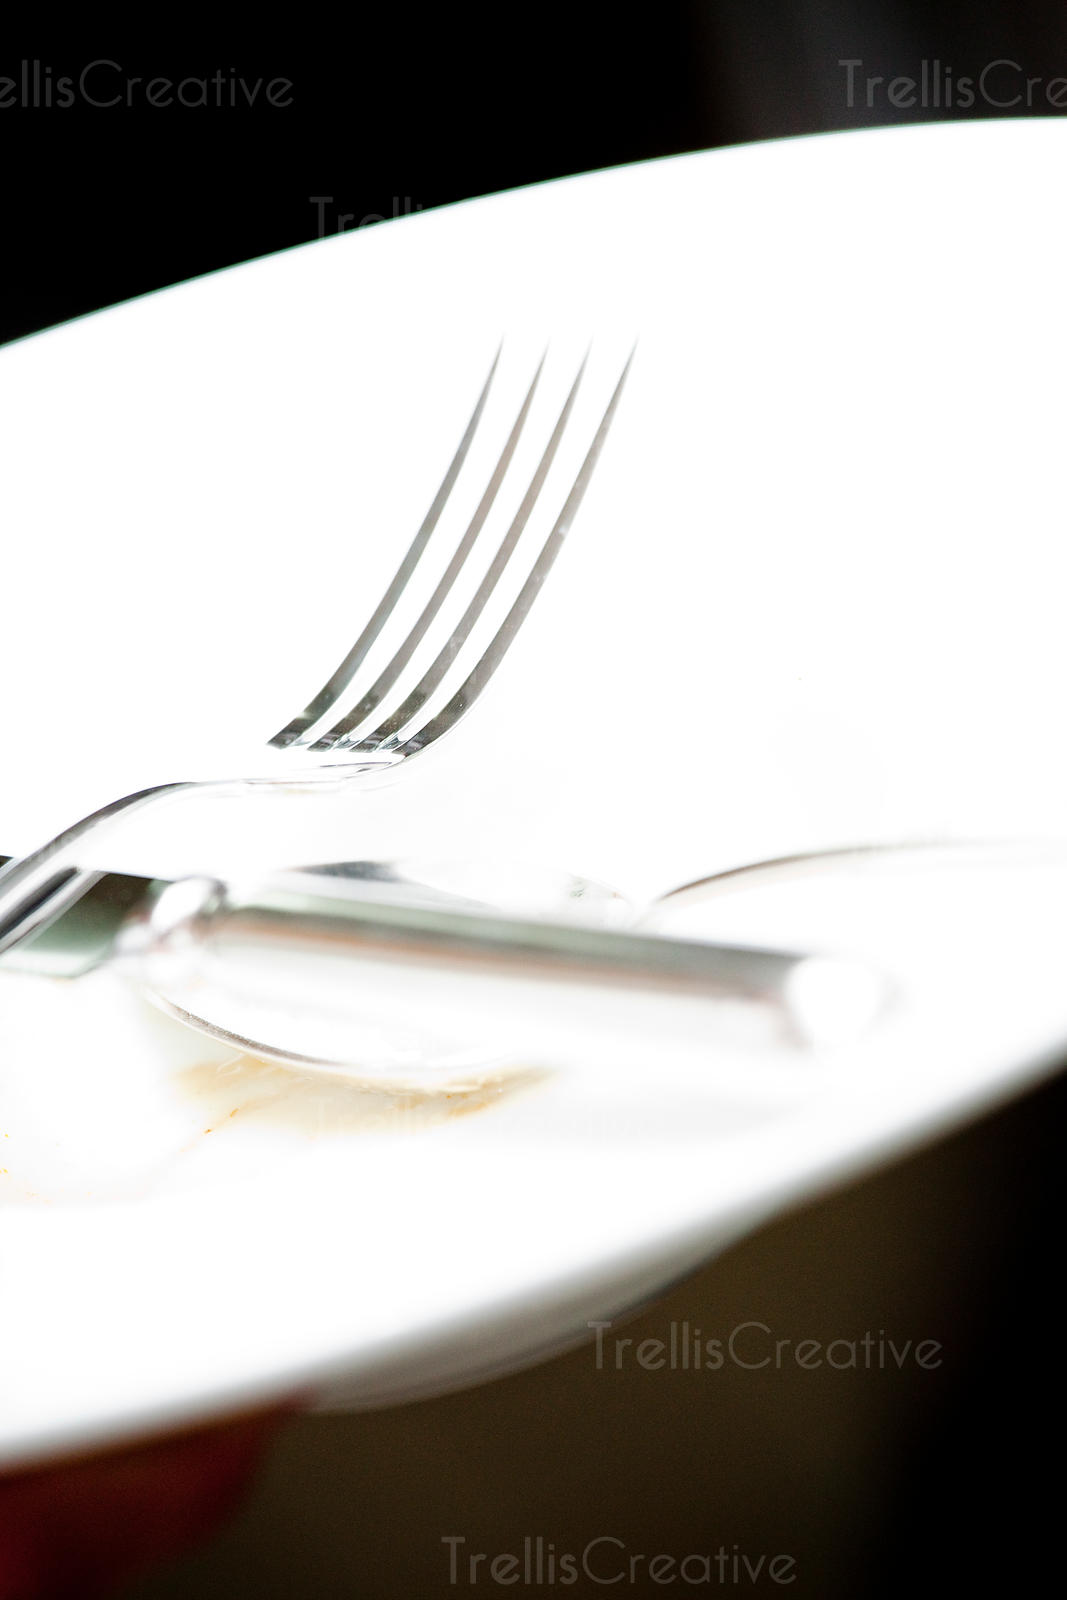 Shiny fork and knife on a white dinner plate